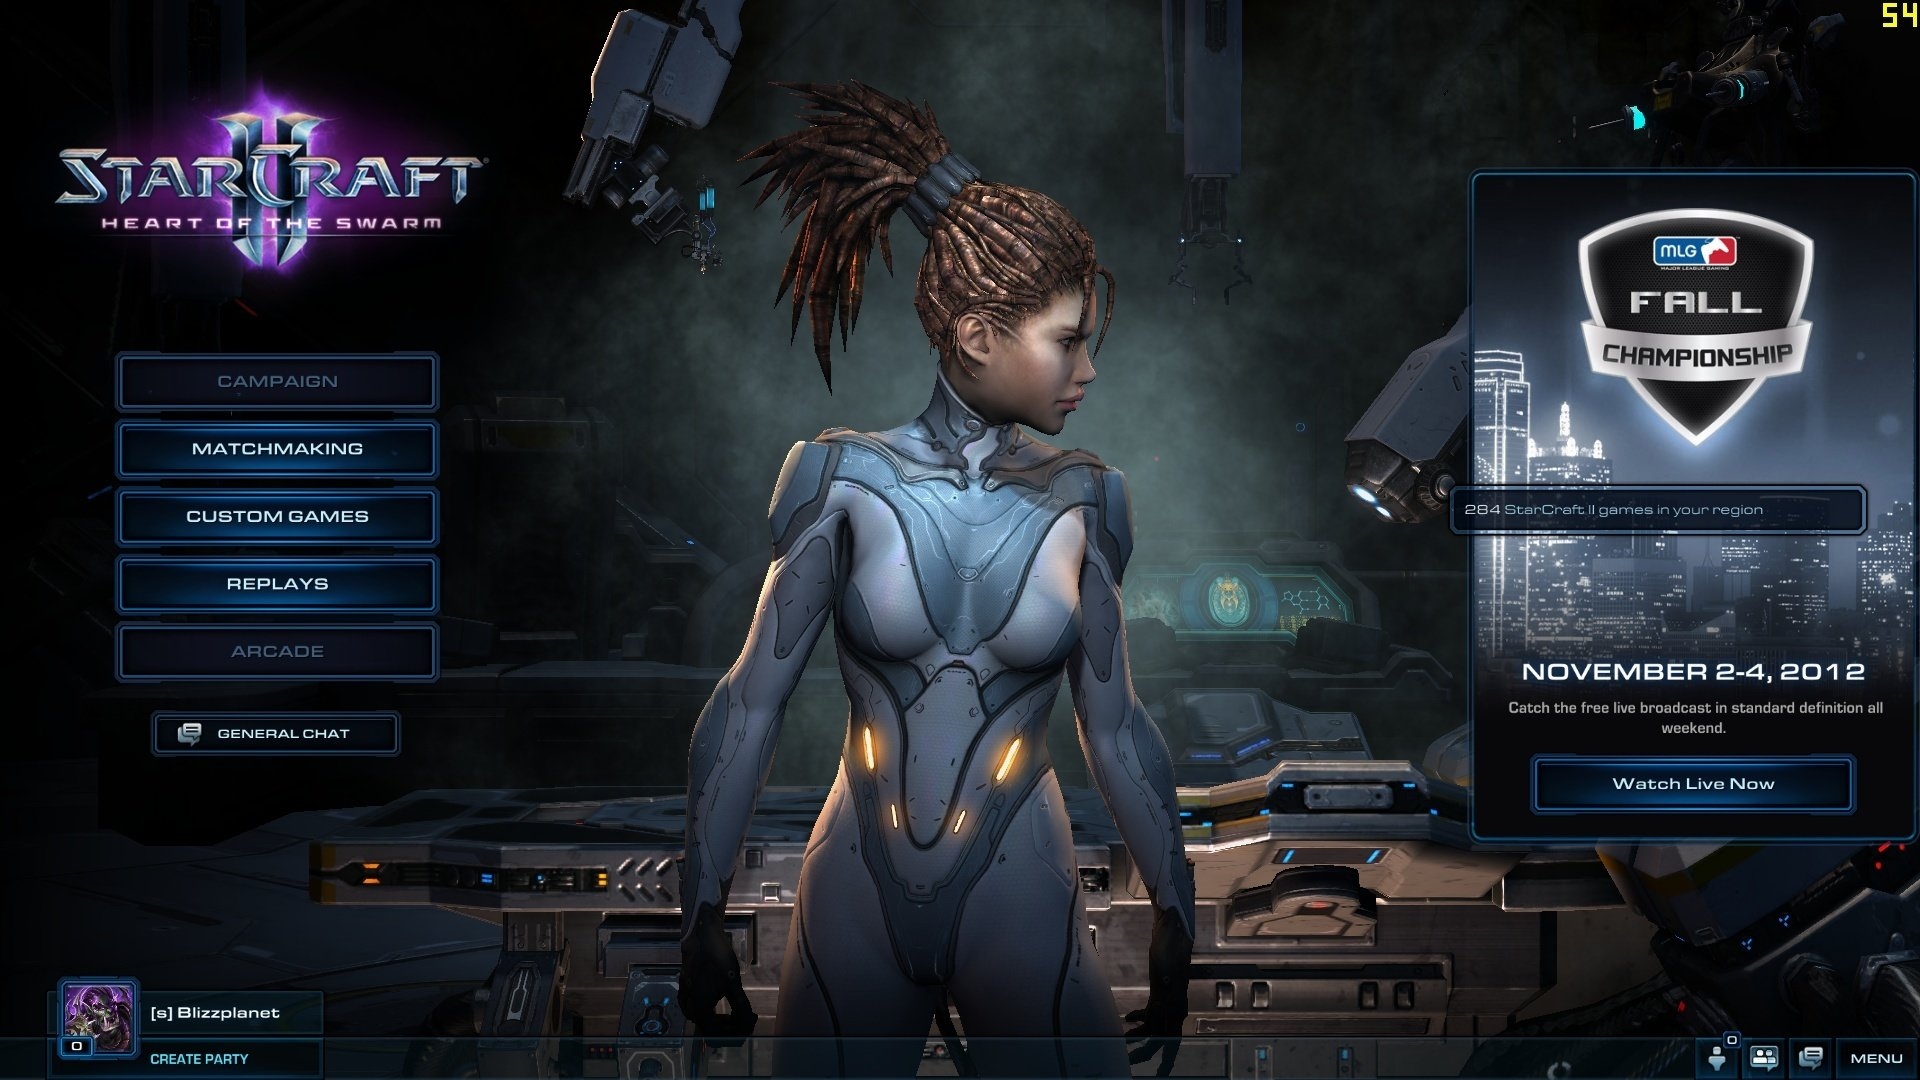 Download 1080p Starcraft 2 Heart Of The Swarm Pc Wallpaper